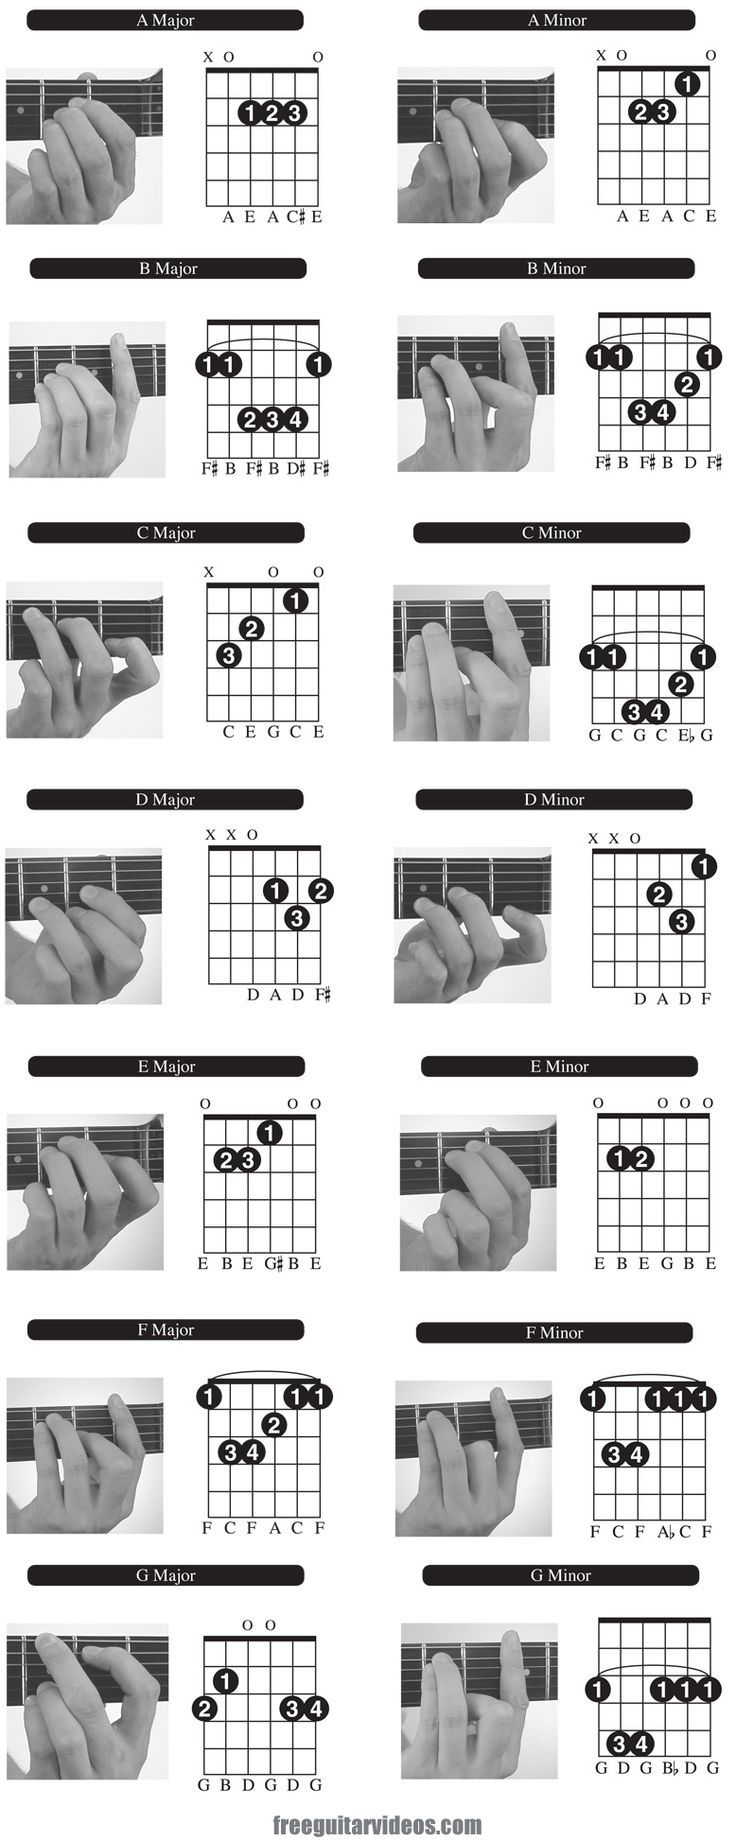 16 Best Guitar Images On Pinterest Guitar Chords Guitar Lessons